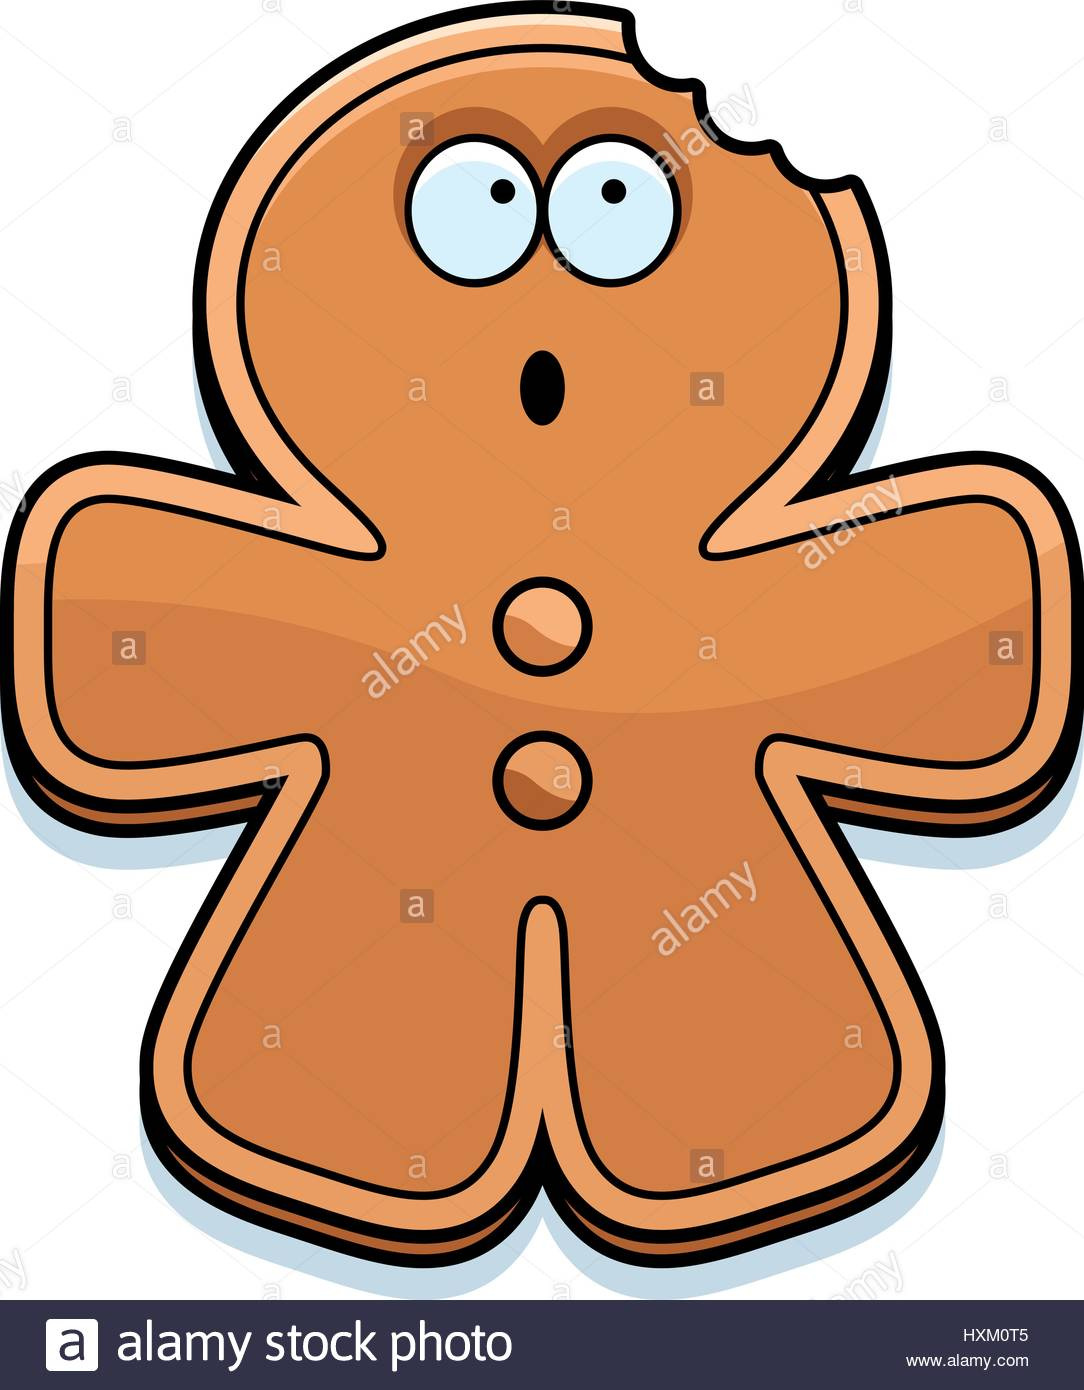 1084x1390 A Cartoon Illustration Of A Gingerbread Man With A Bite Taken Out